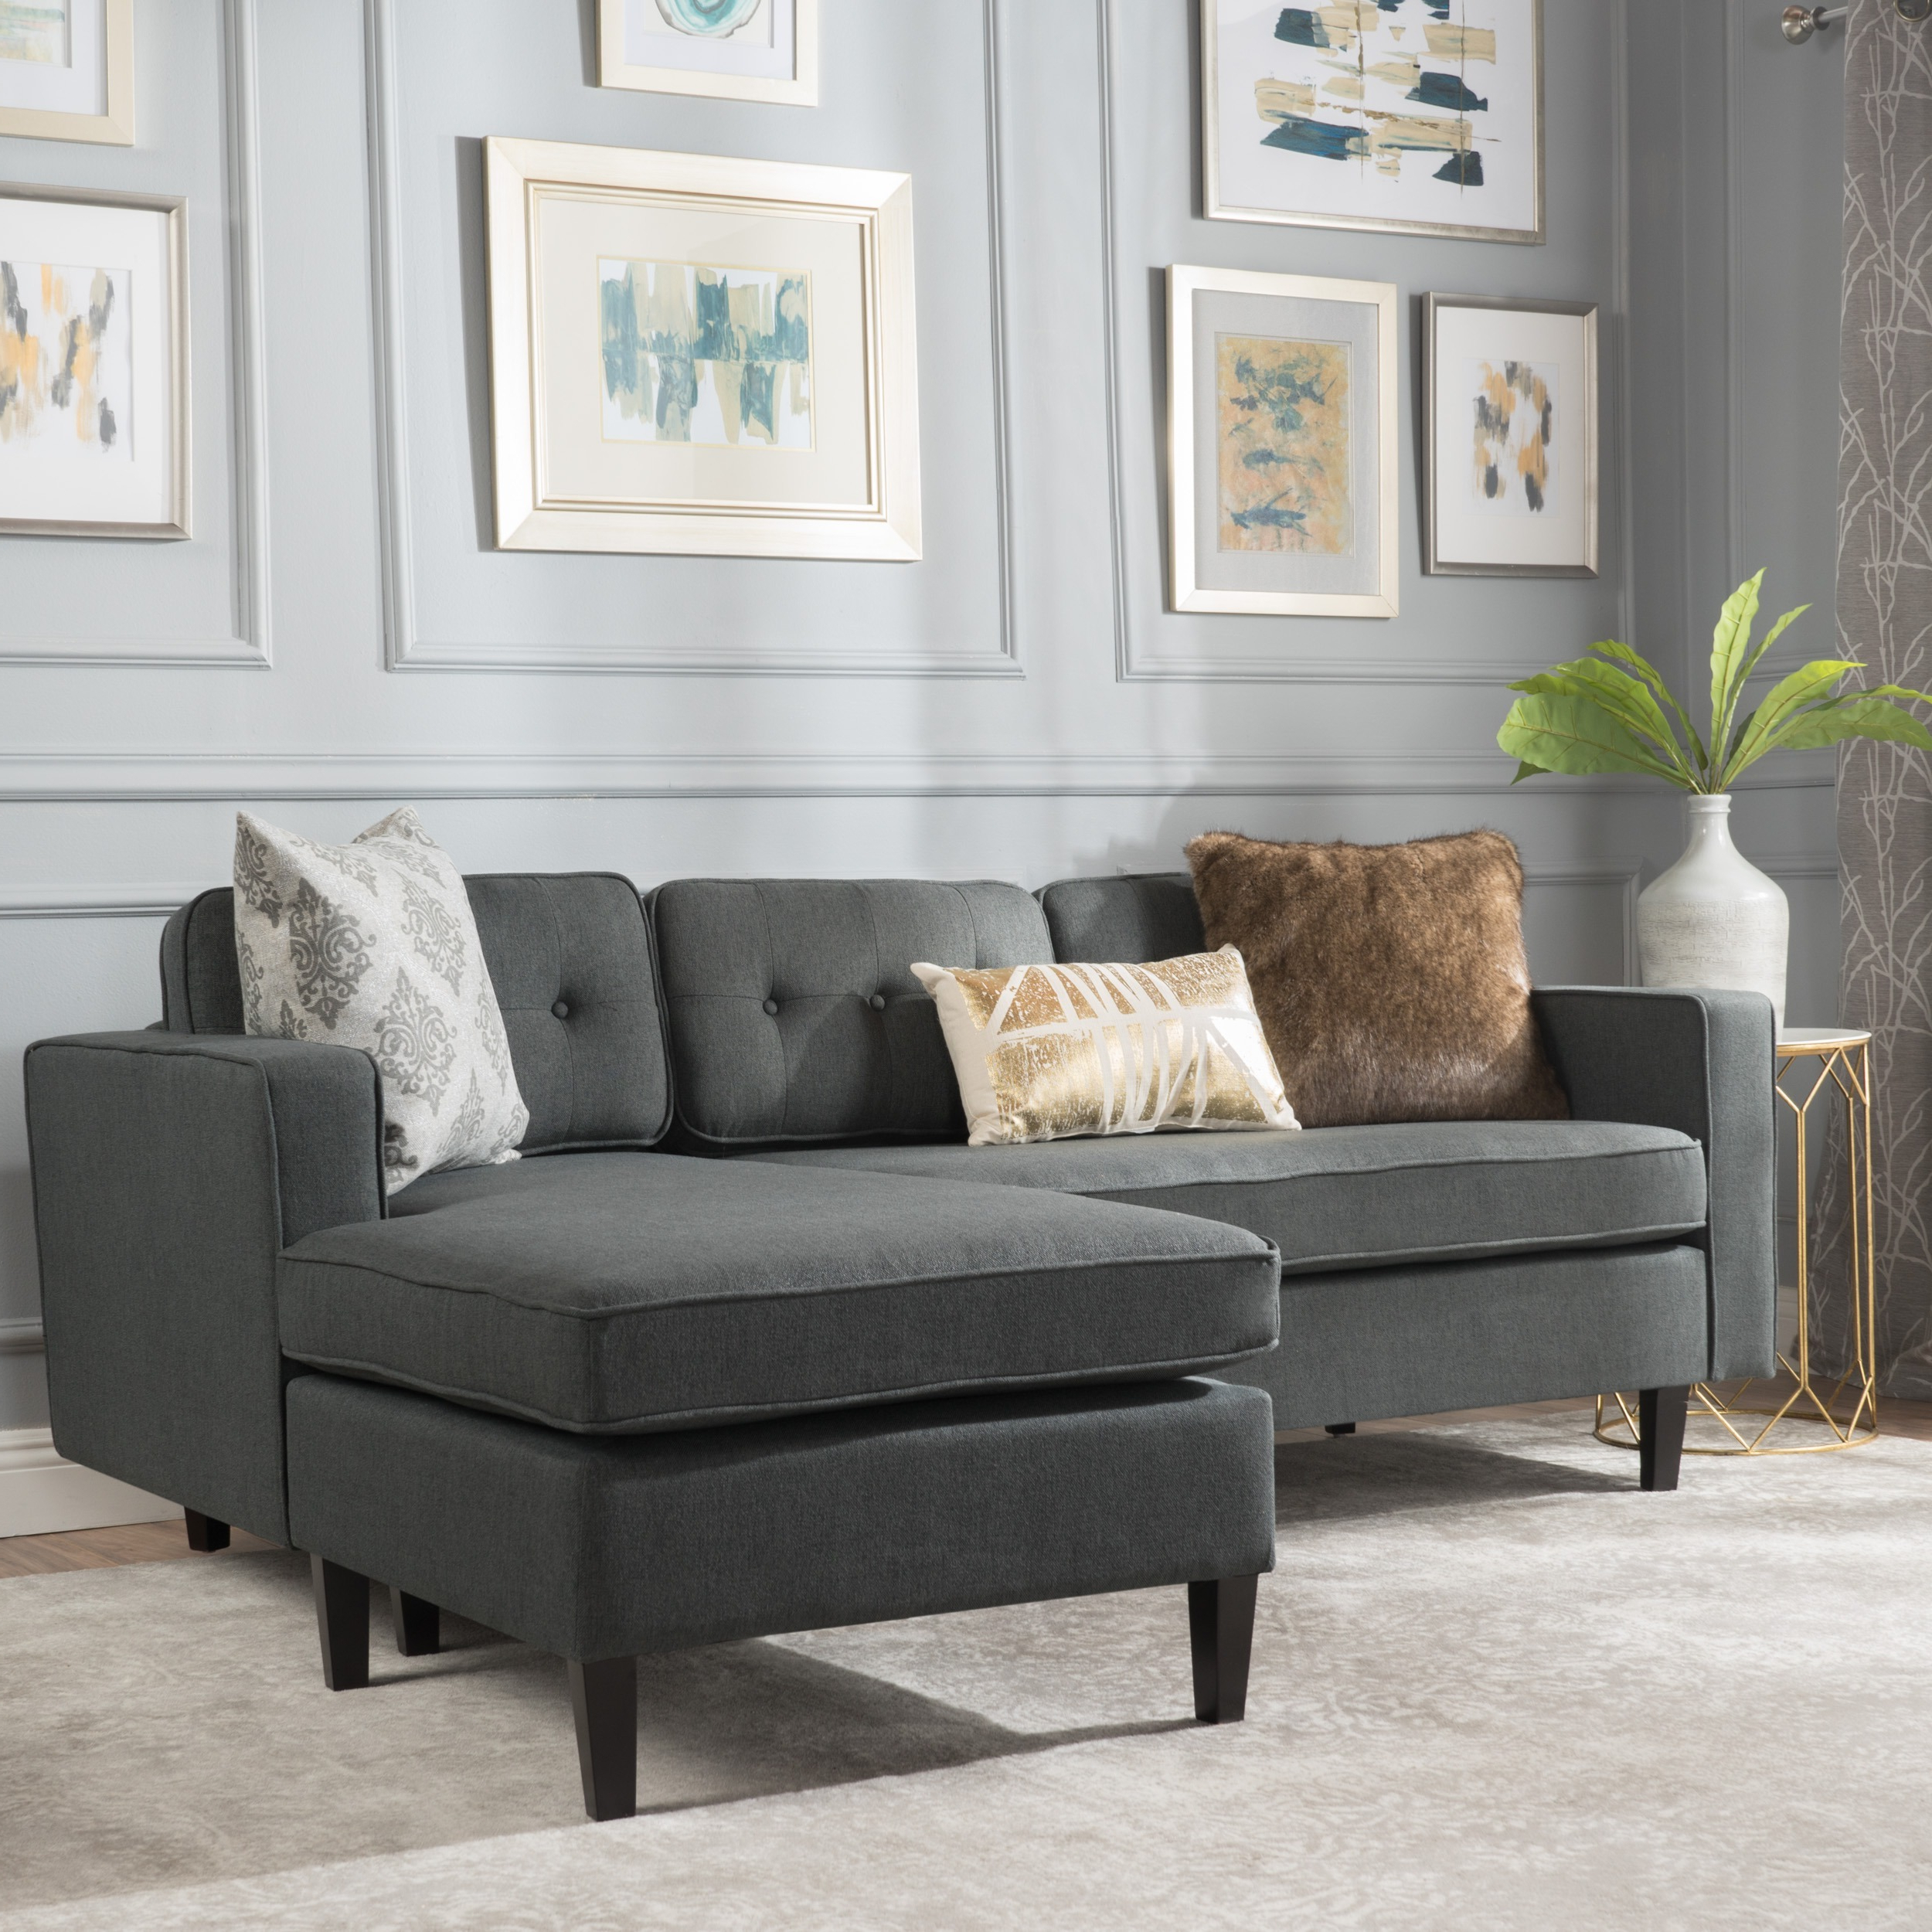 2017 Alani Mid Century Modern Sectional Sofas With Chaise Pertaining To Christopher Knight Home Wilder Mid Century Modern 2 Piece (View 1 of 25)